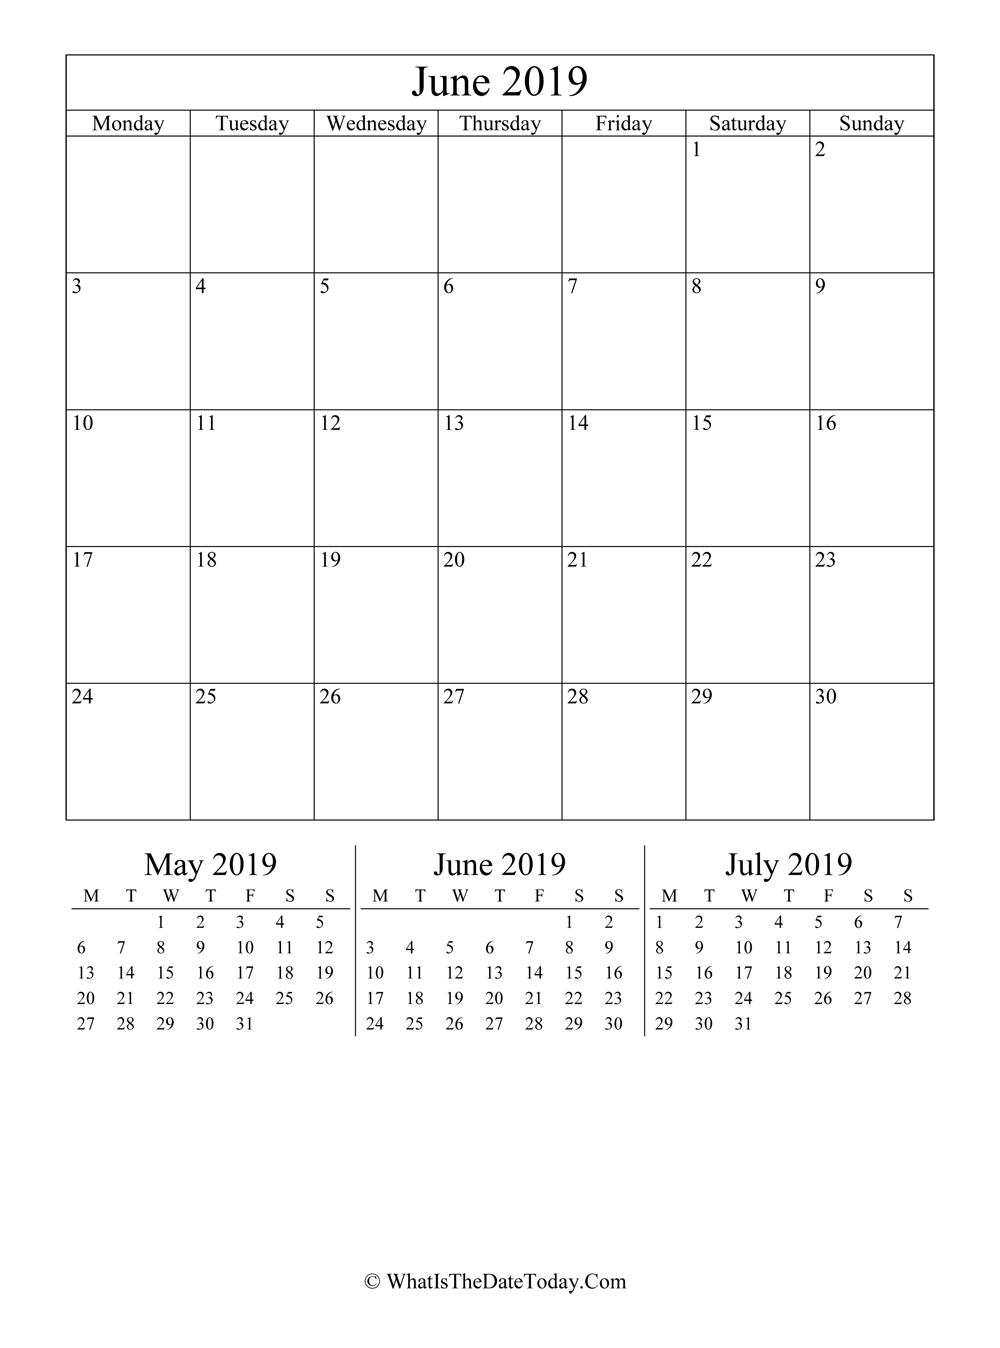 june 2019 editable calendar with three mini calendars in vertical layout